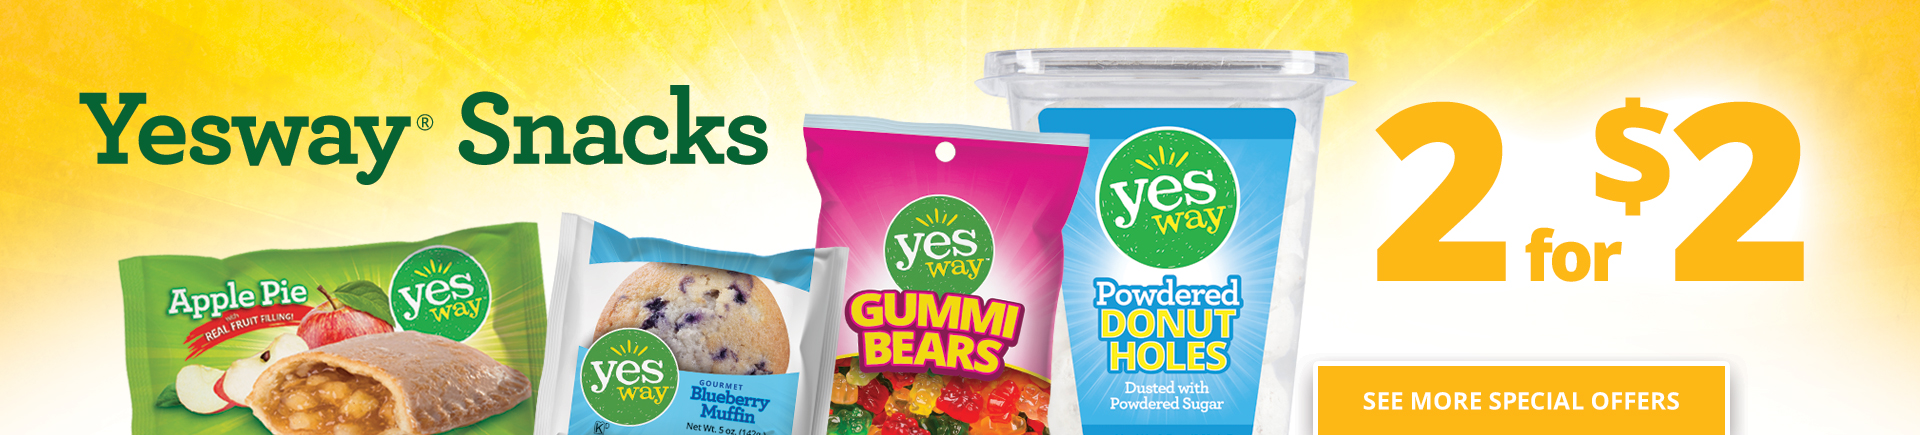 Yesway Snacks - 2 for $2